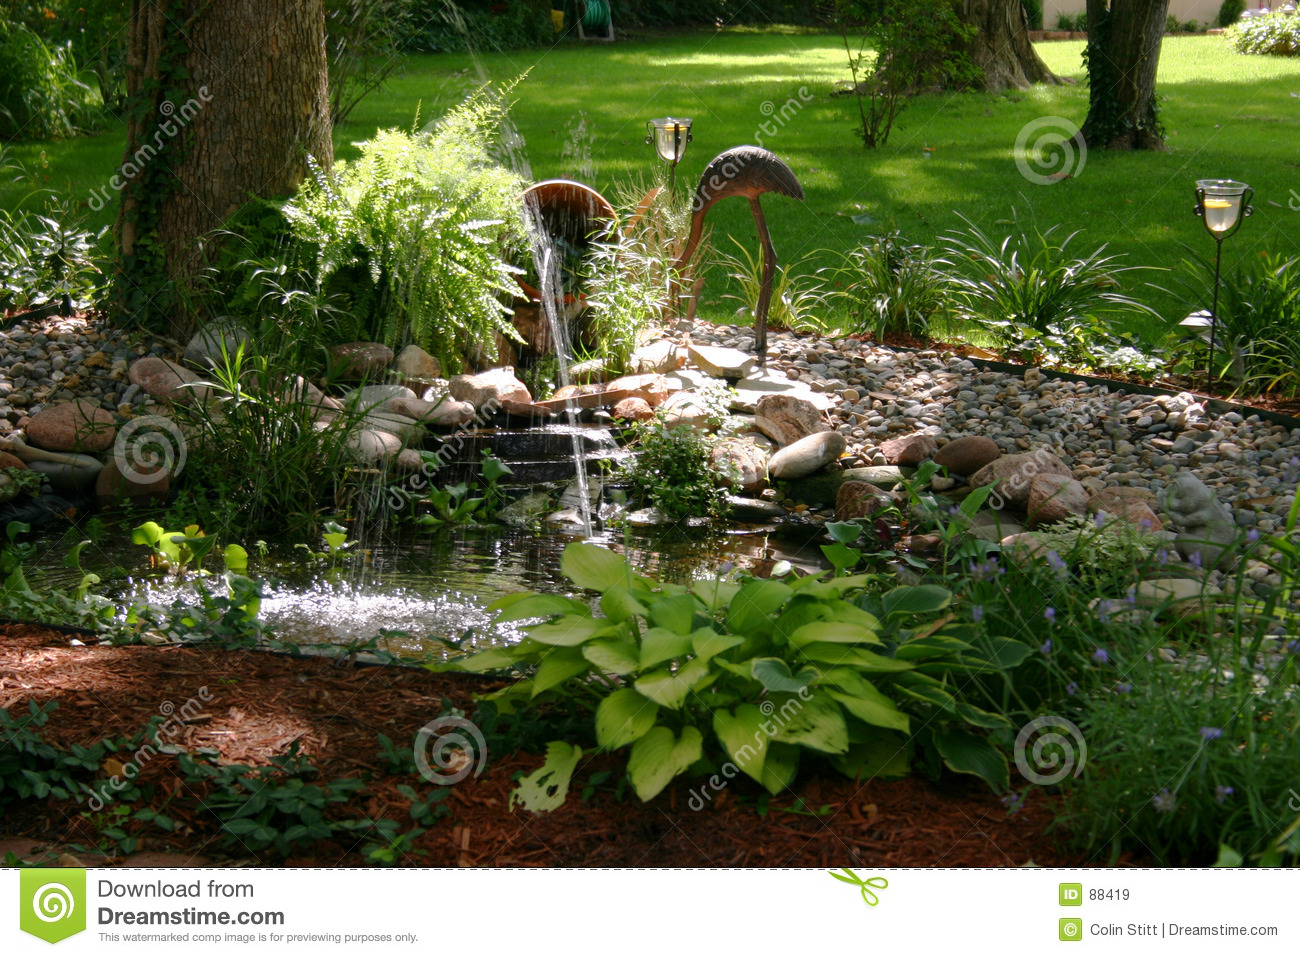 Landscaping Design Stock Image. Image Of Peaceful